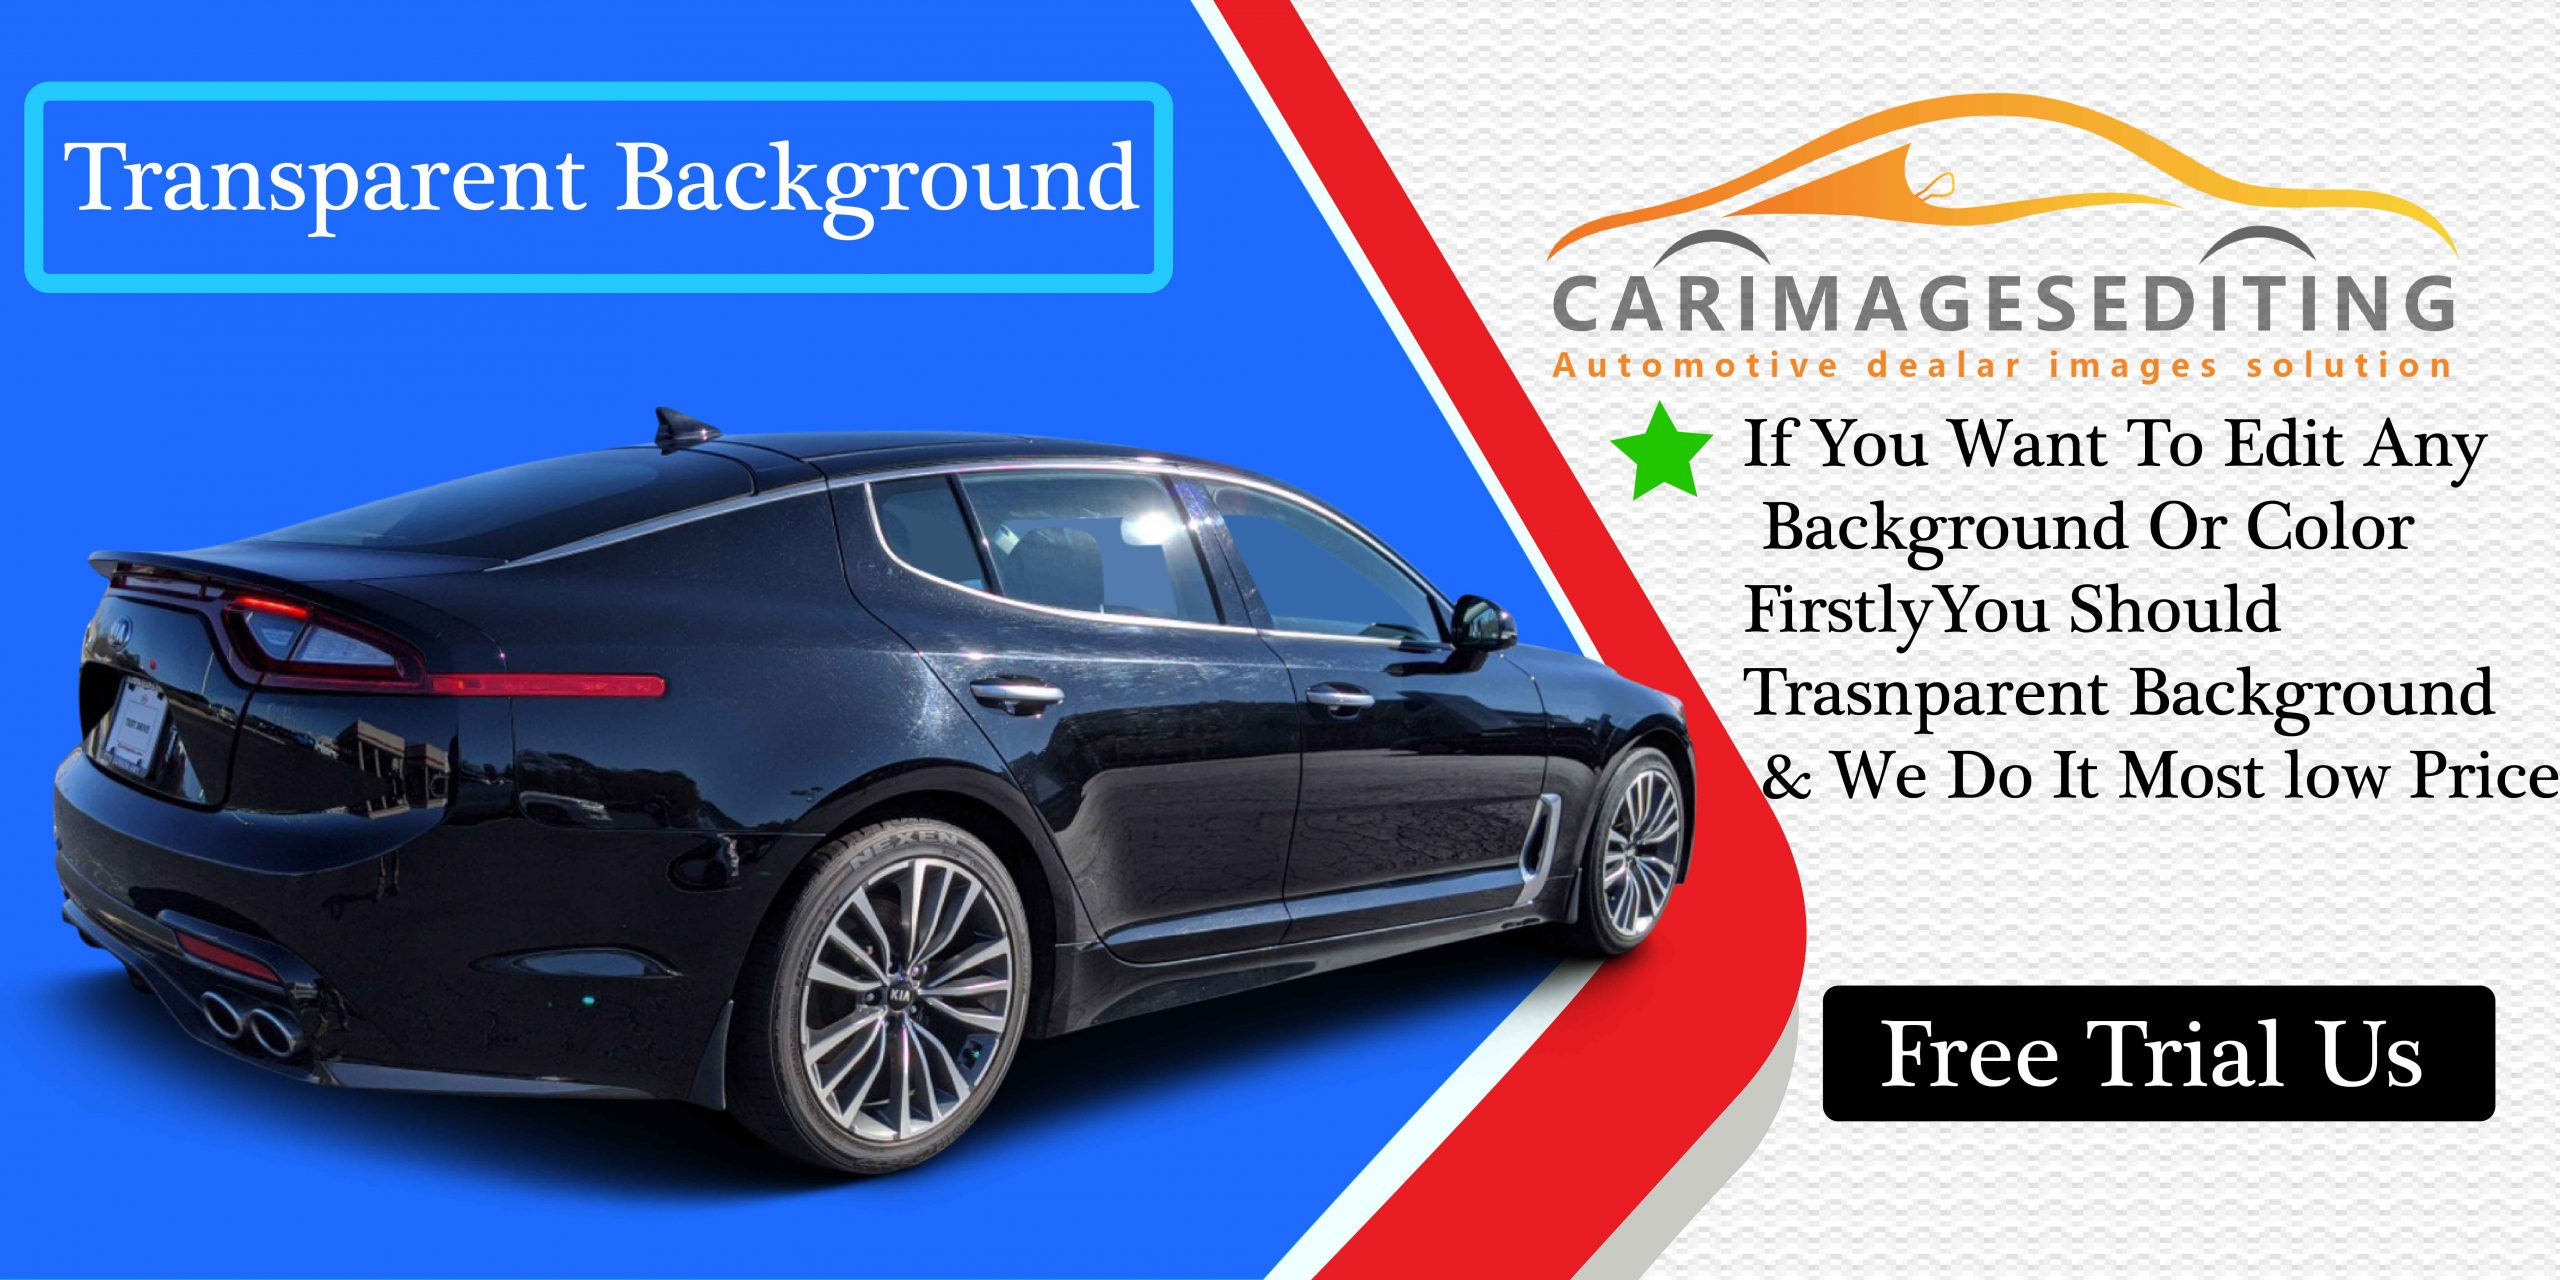 Prioritizing Your Car Transparent Background To Get The Most Out Of Your Business Feature image